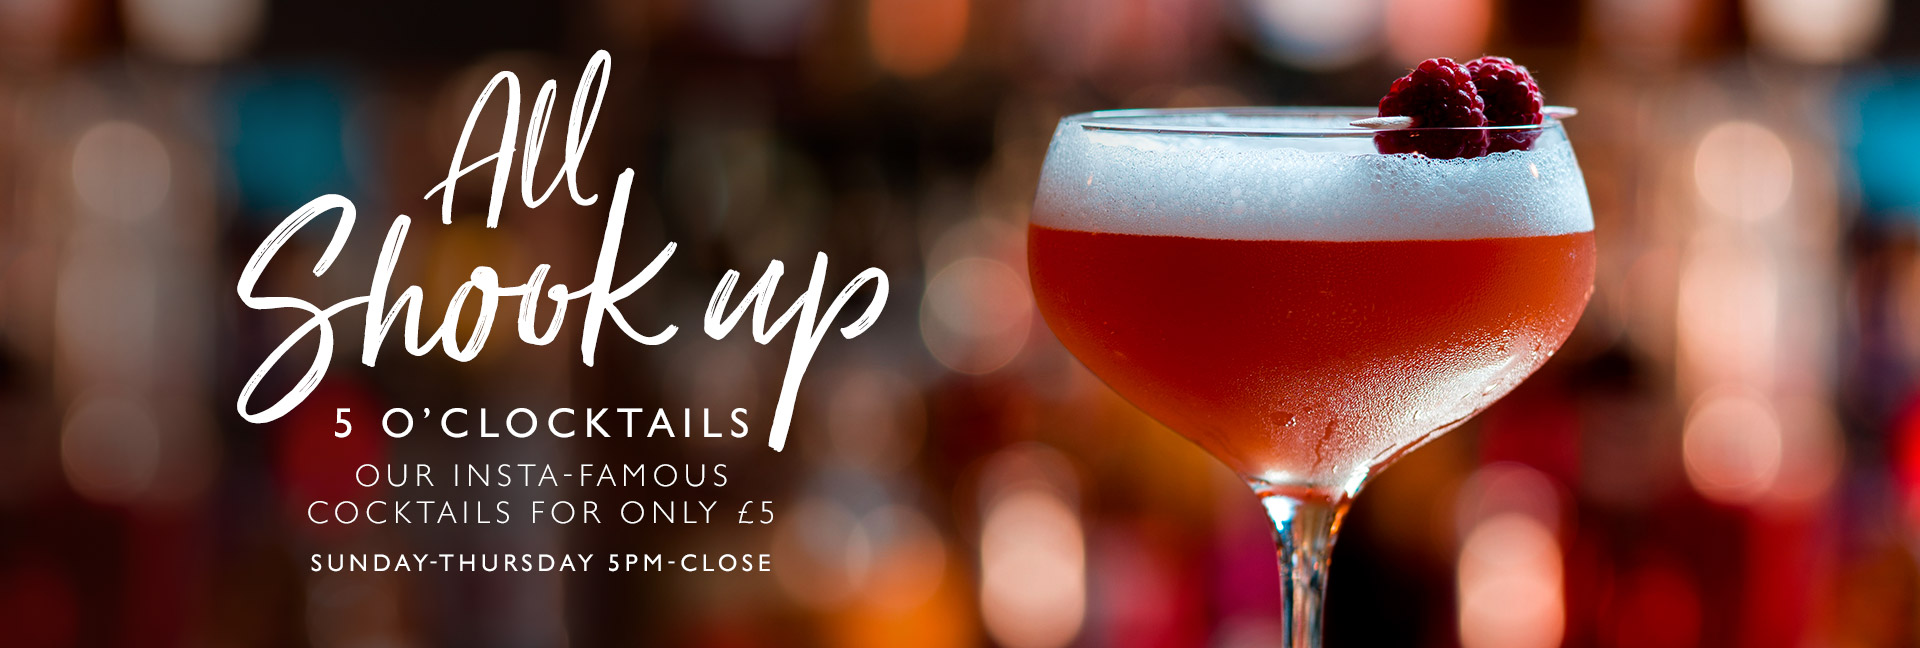 5 O'clocktails at All Bar One Windsor - Book now